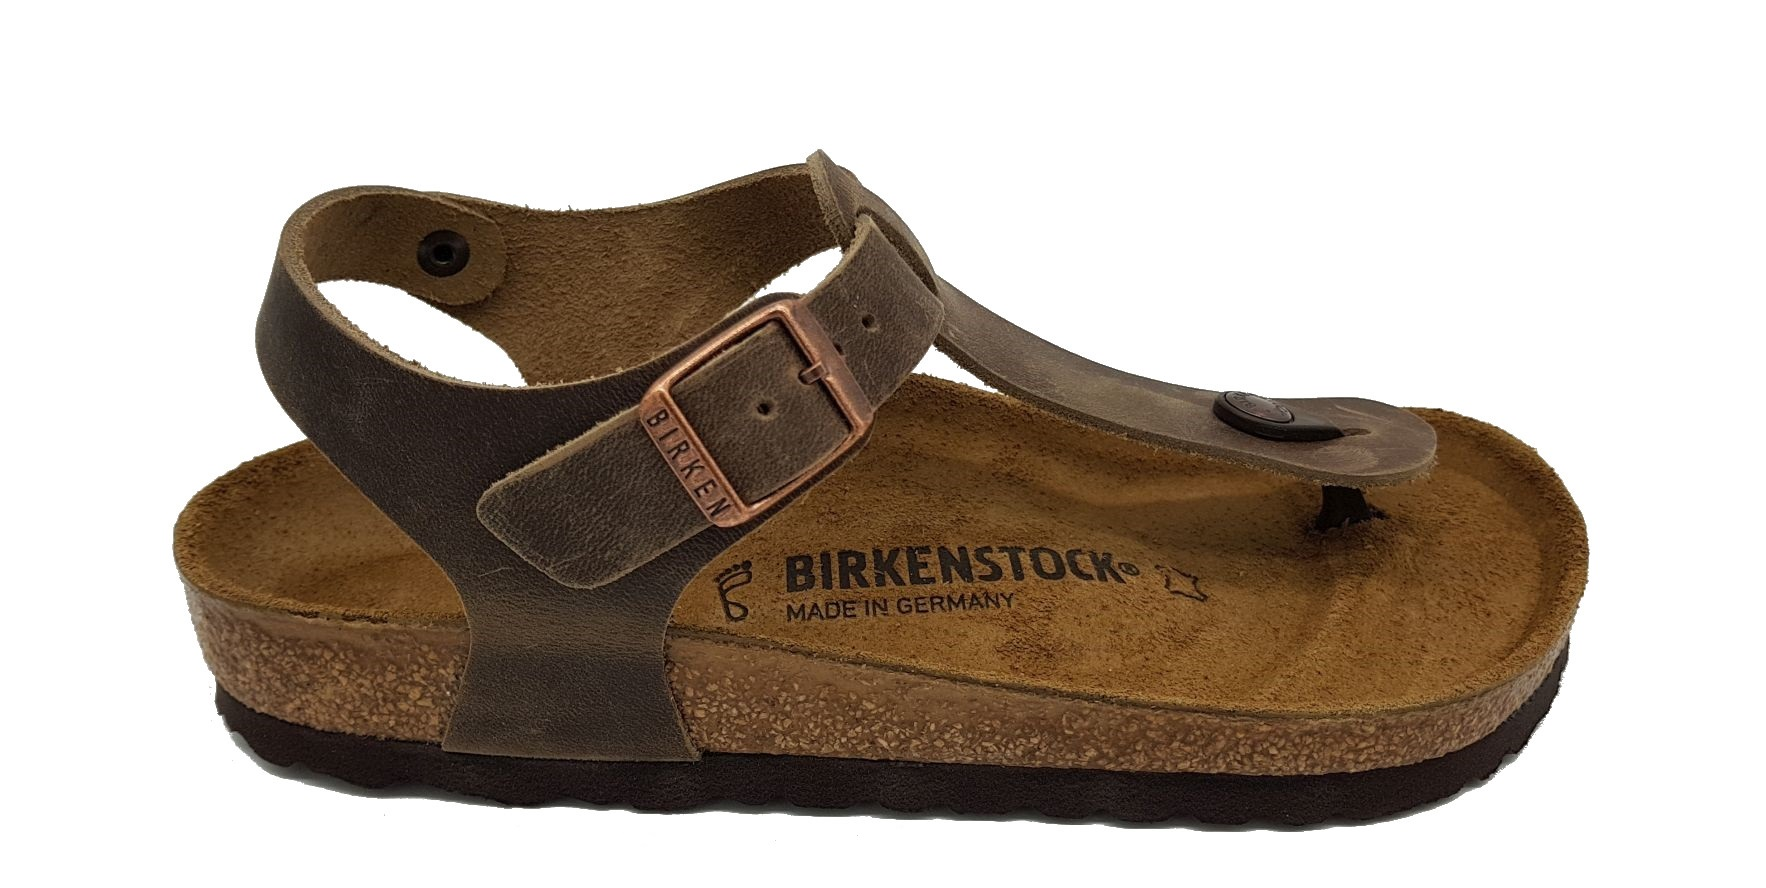 12a031d32b0 ... Vista previa  Birkenstock Kairo Tabacco Brown Waxy Leather ...